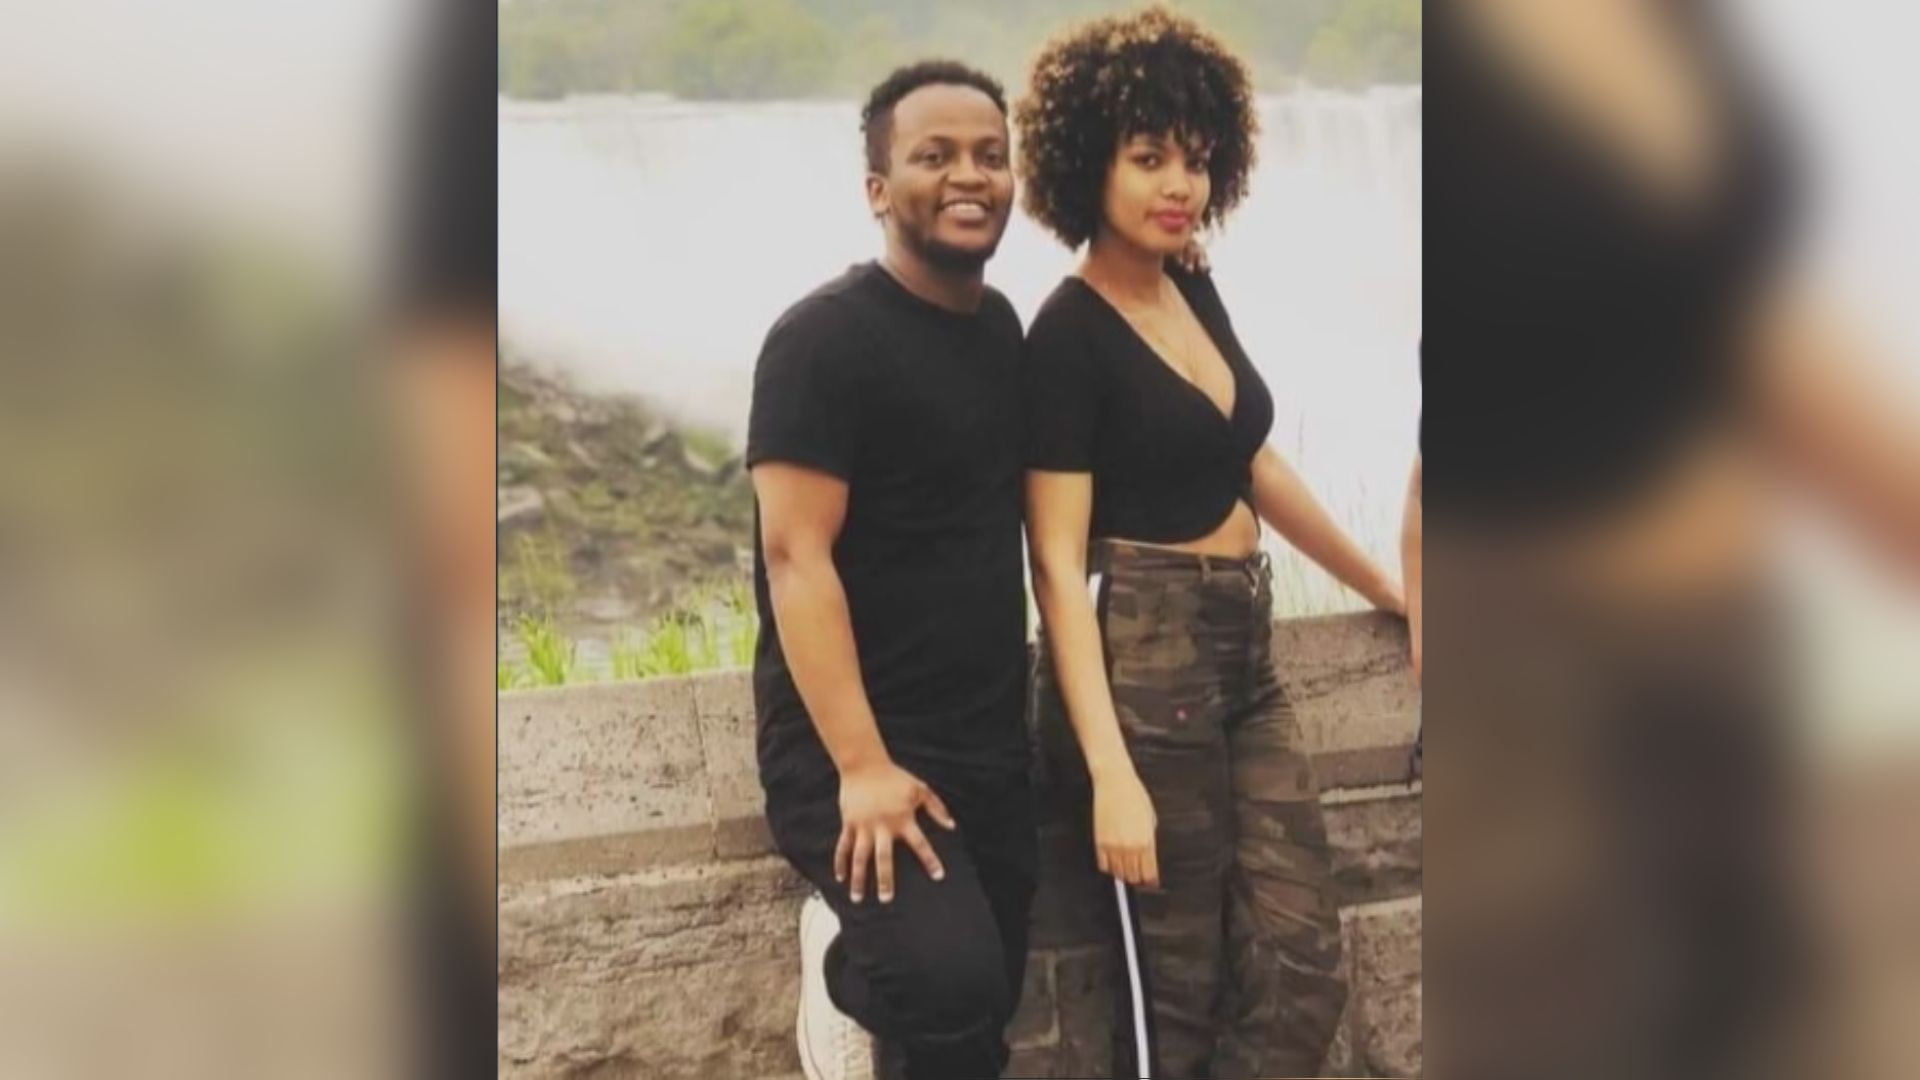 22-year-old refugee from Ethiopia is Toronto's 59th homicide victim